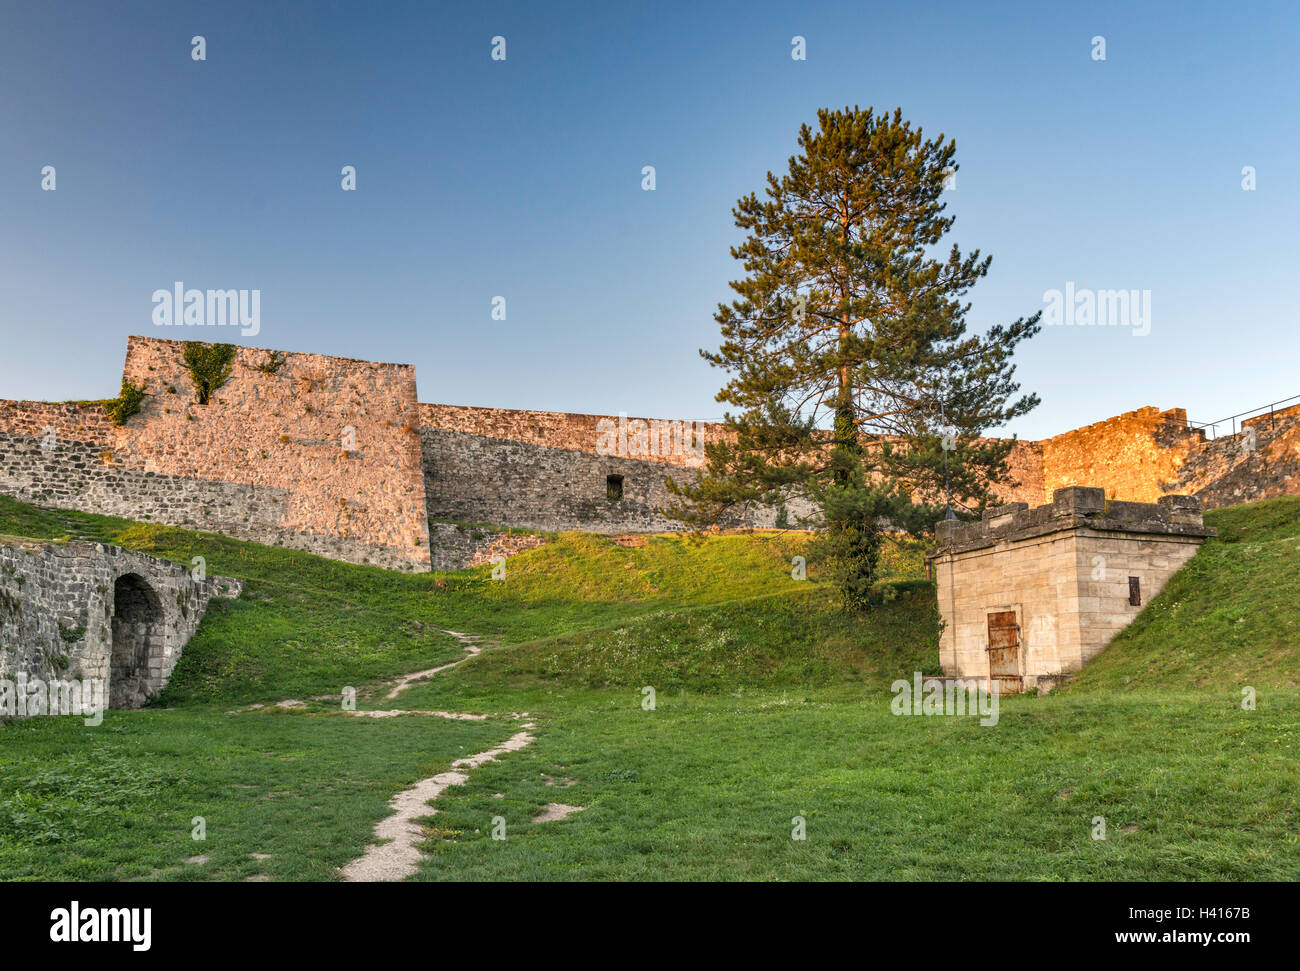 Ramparts at fortress in Jajce, Central Bosnia Canton, Bosnia and Herzegovina - Stock Image